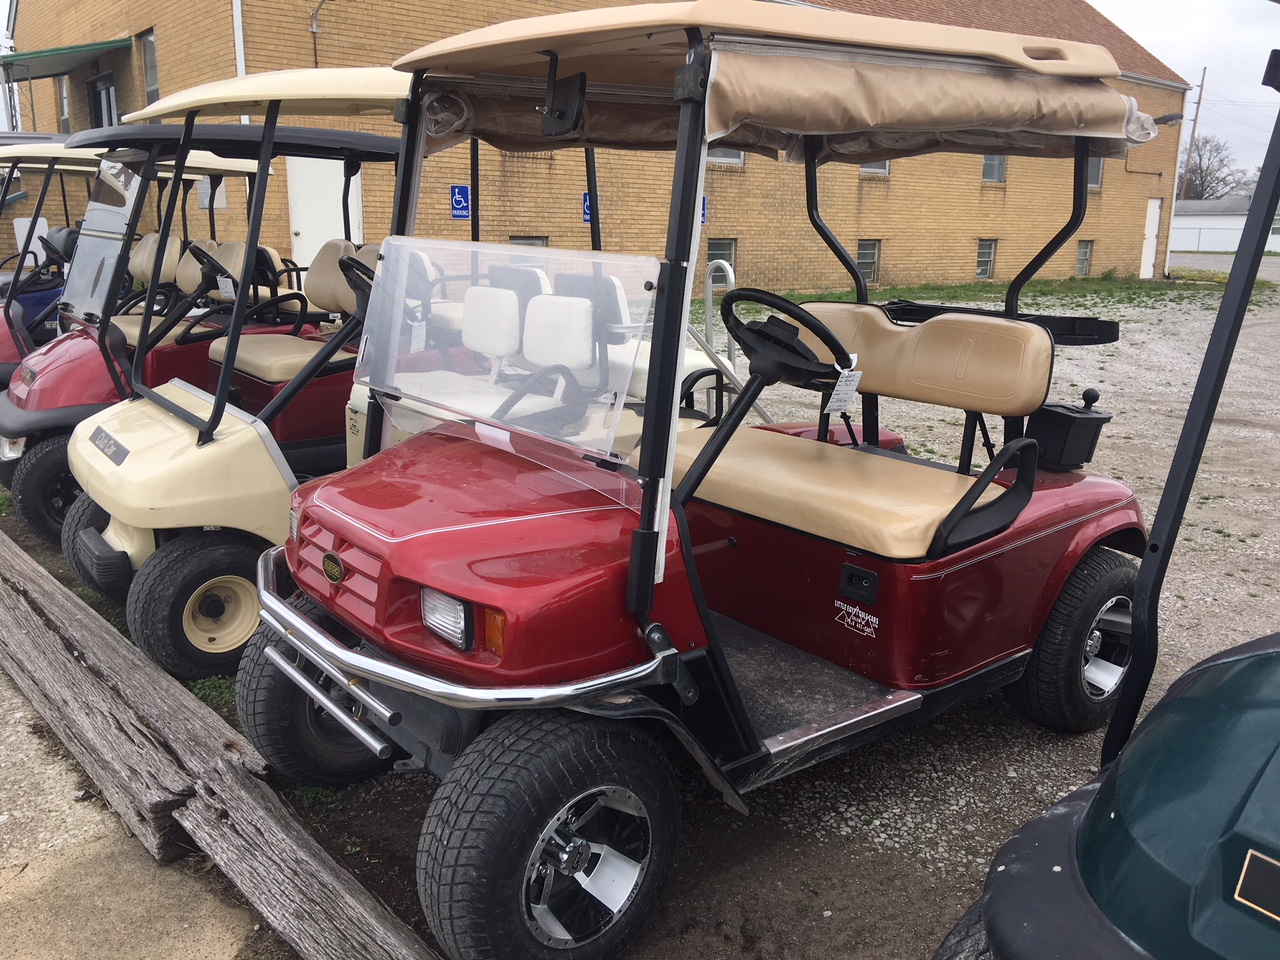 2004 Red Metallic EZGO Electric Golf Car $3495